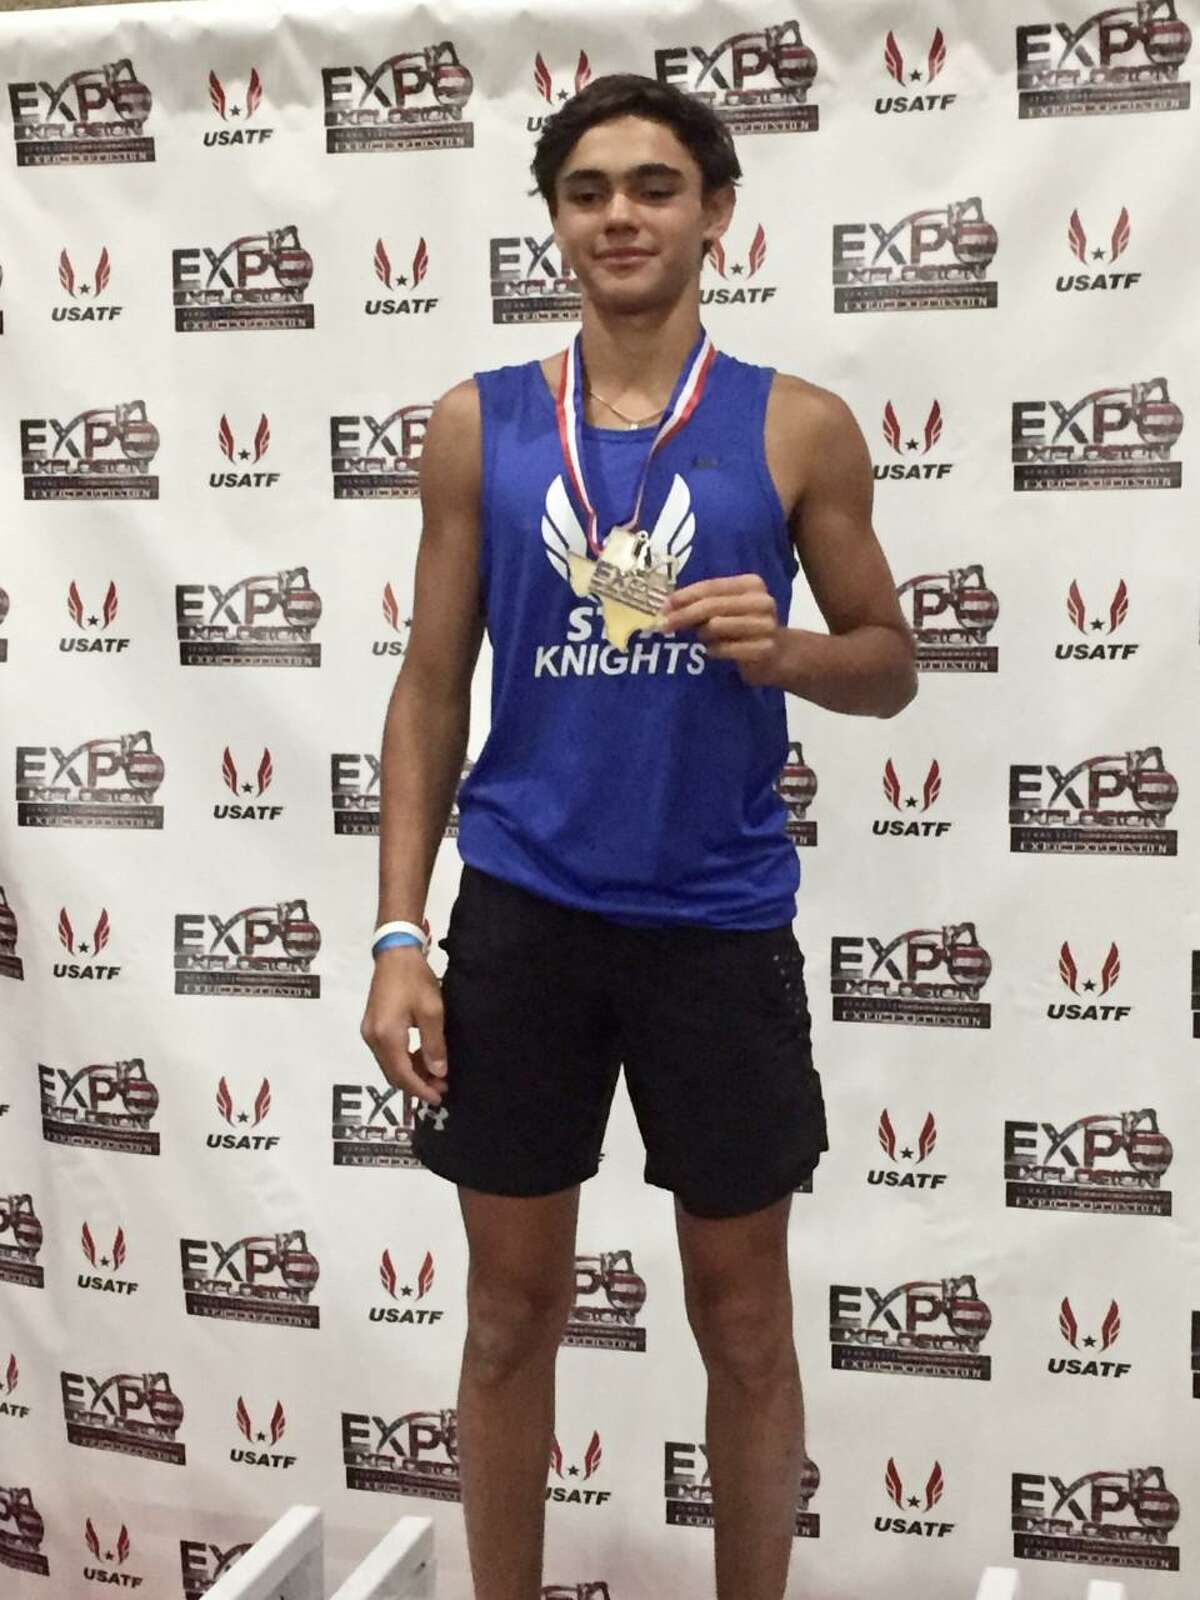 St. Augustine's Efram Melendez cleared 14-foot-8 last week to take first place at the Texas EXPO Explosion pole vault meet.